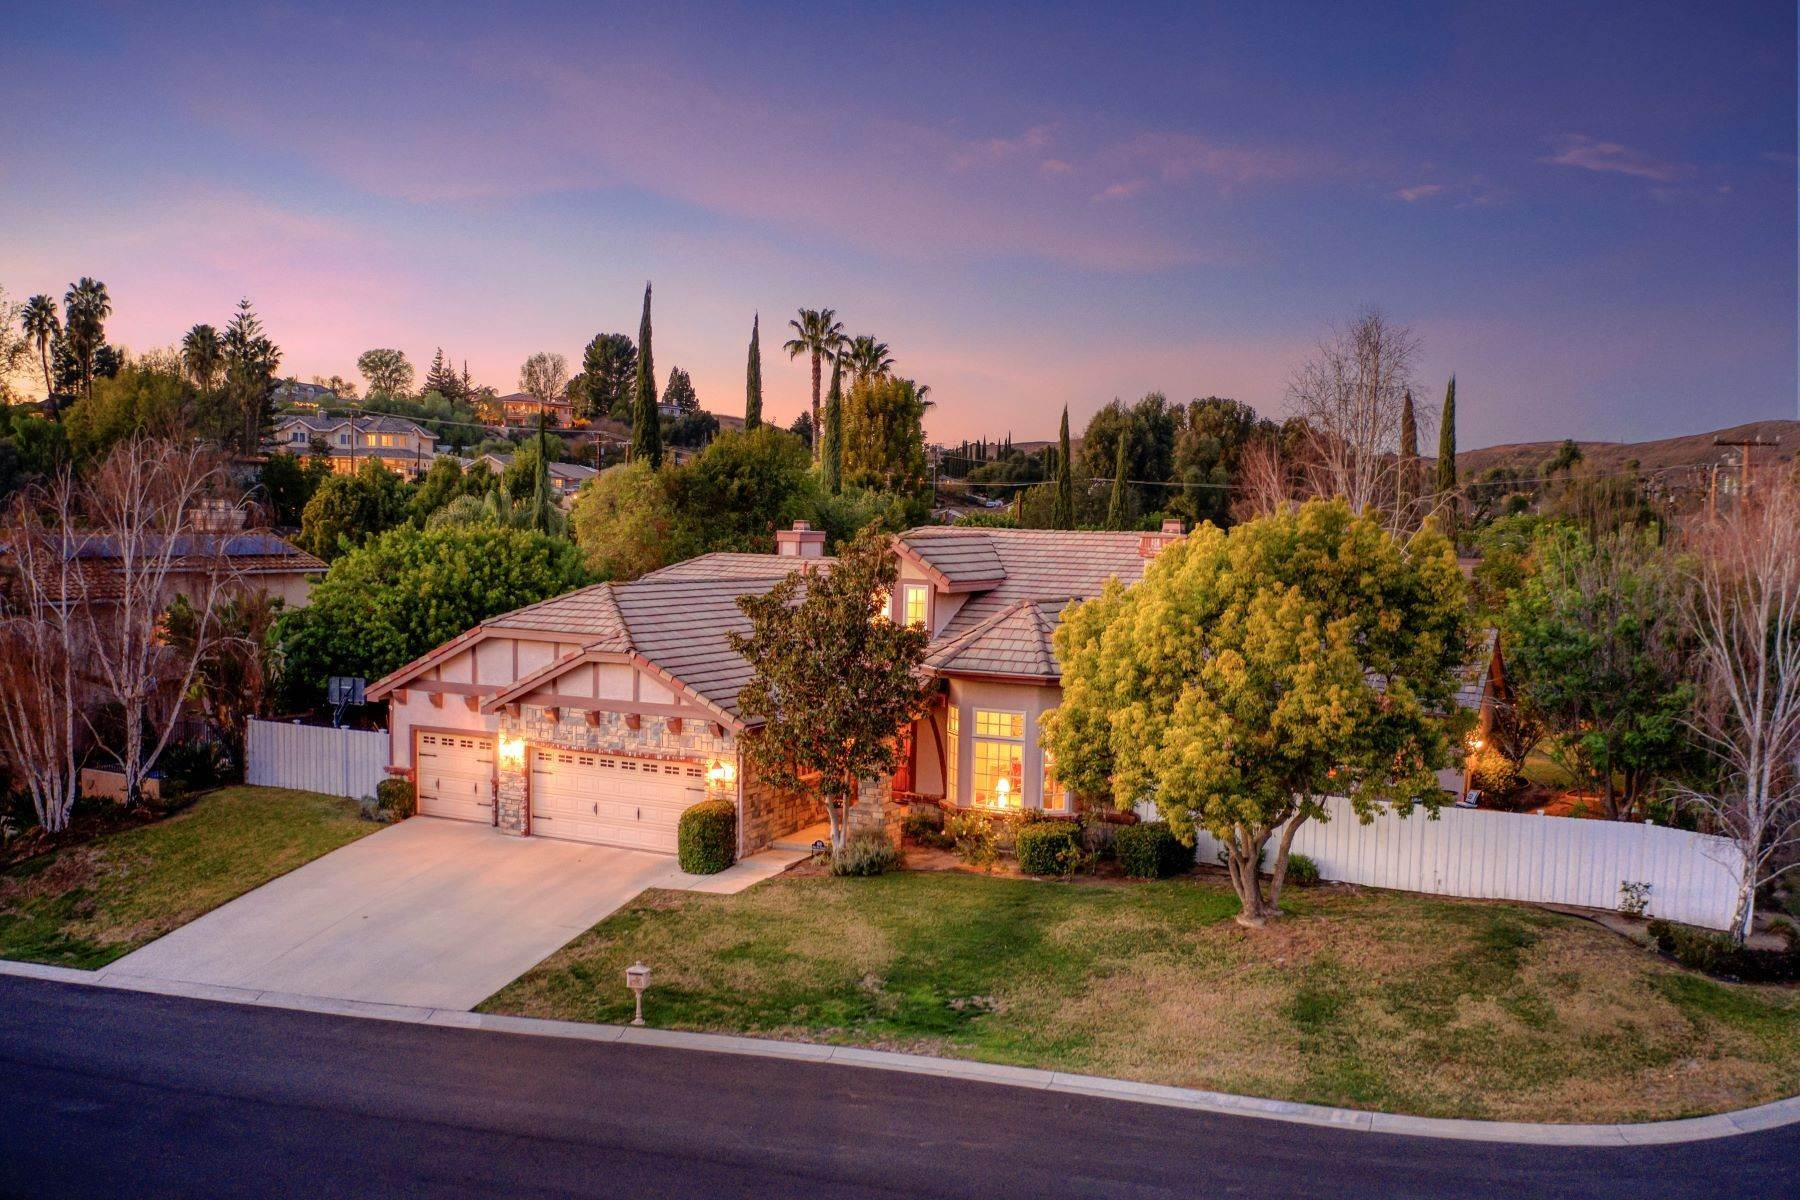 Single Family Homes for Sale at Single-Story Entertainers Home 805 Paseo Del Robledo Thousand Oaks, California 91360 United States